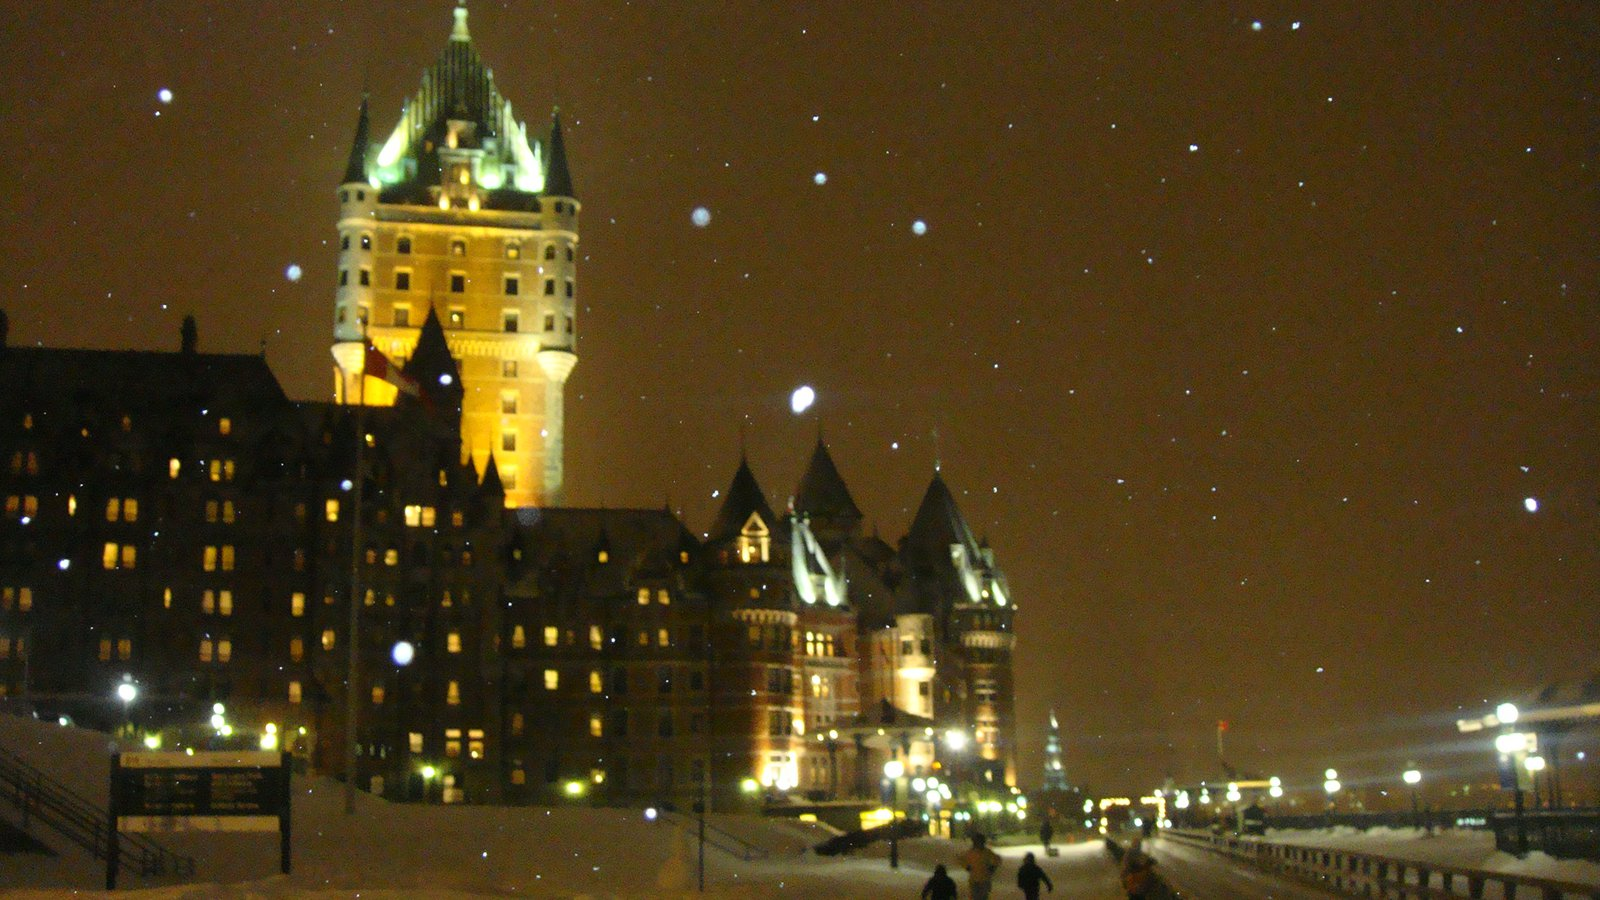 Quebec city in the nighht